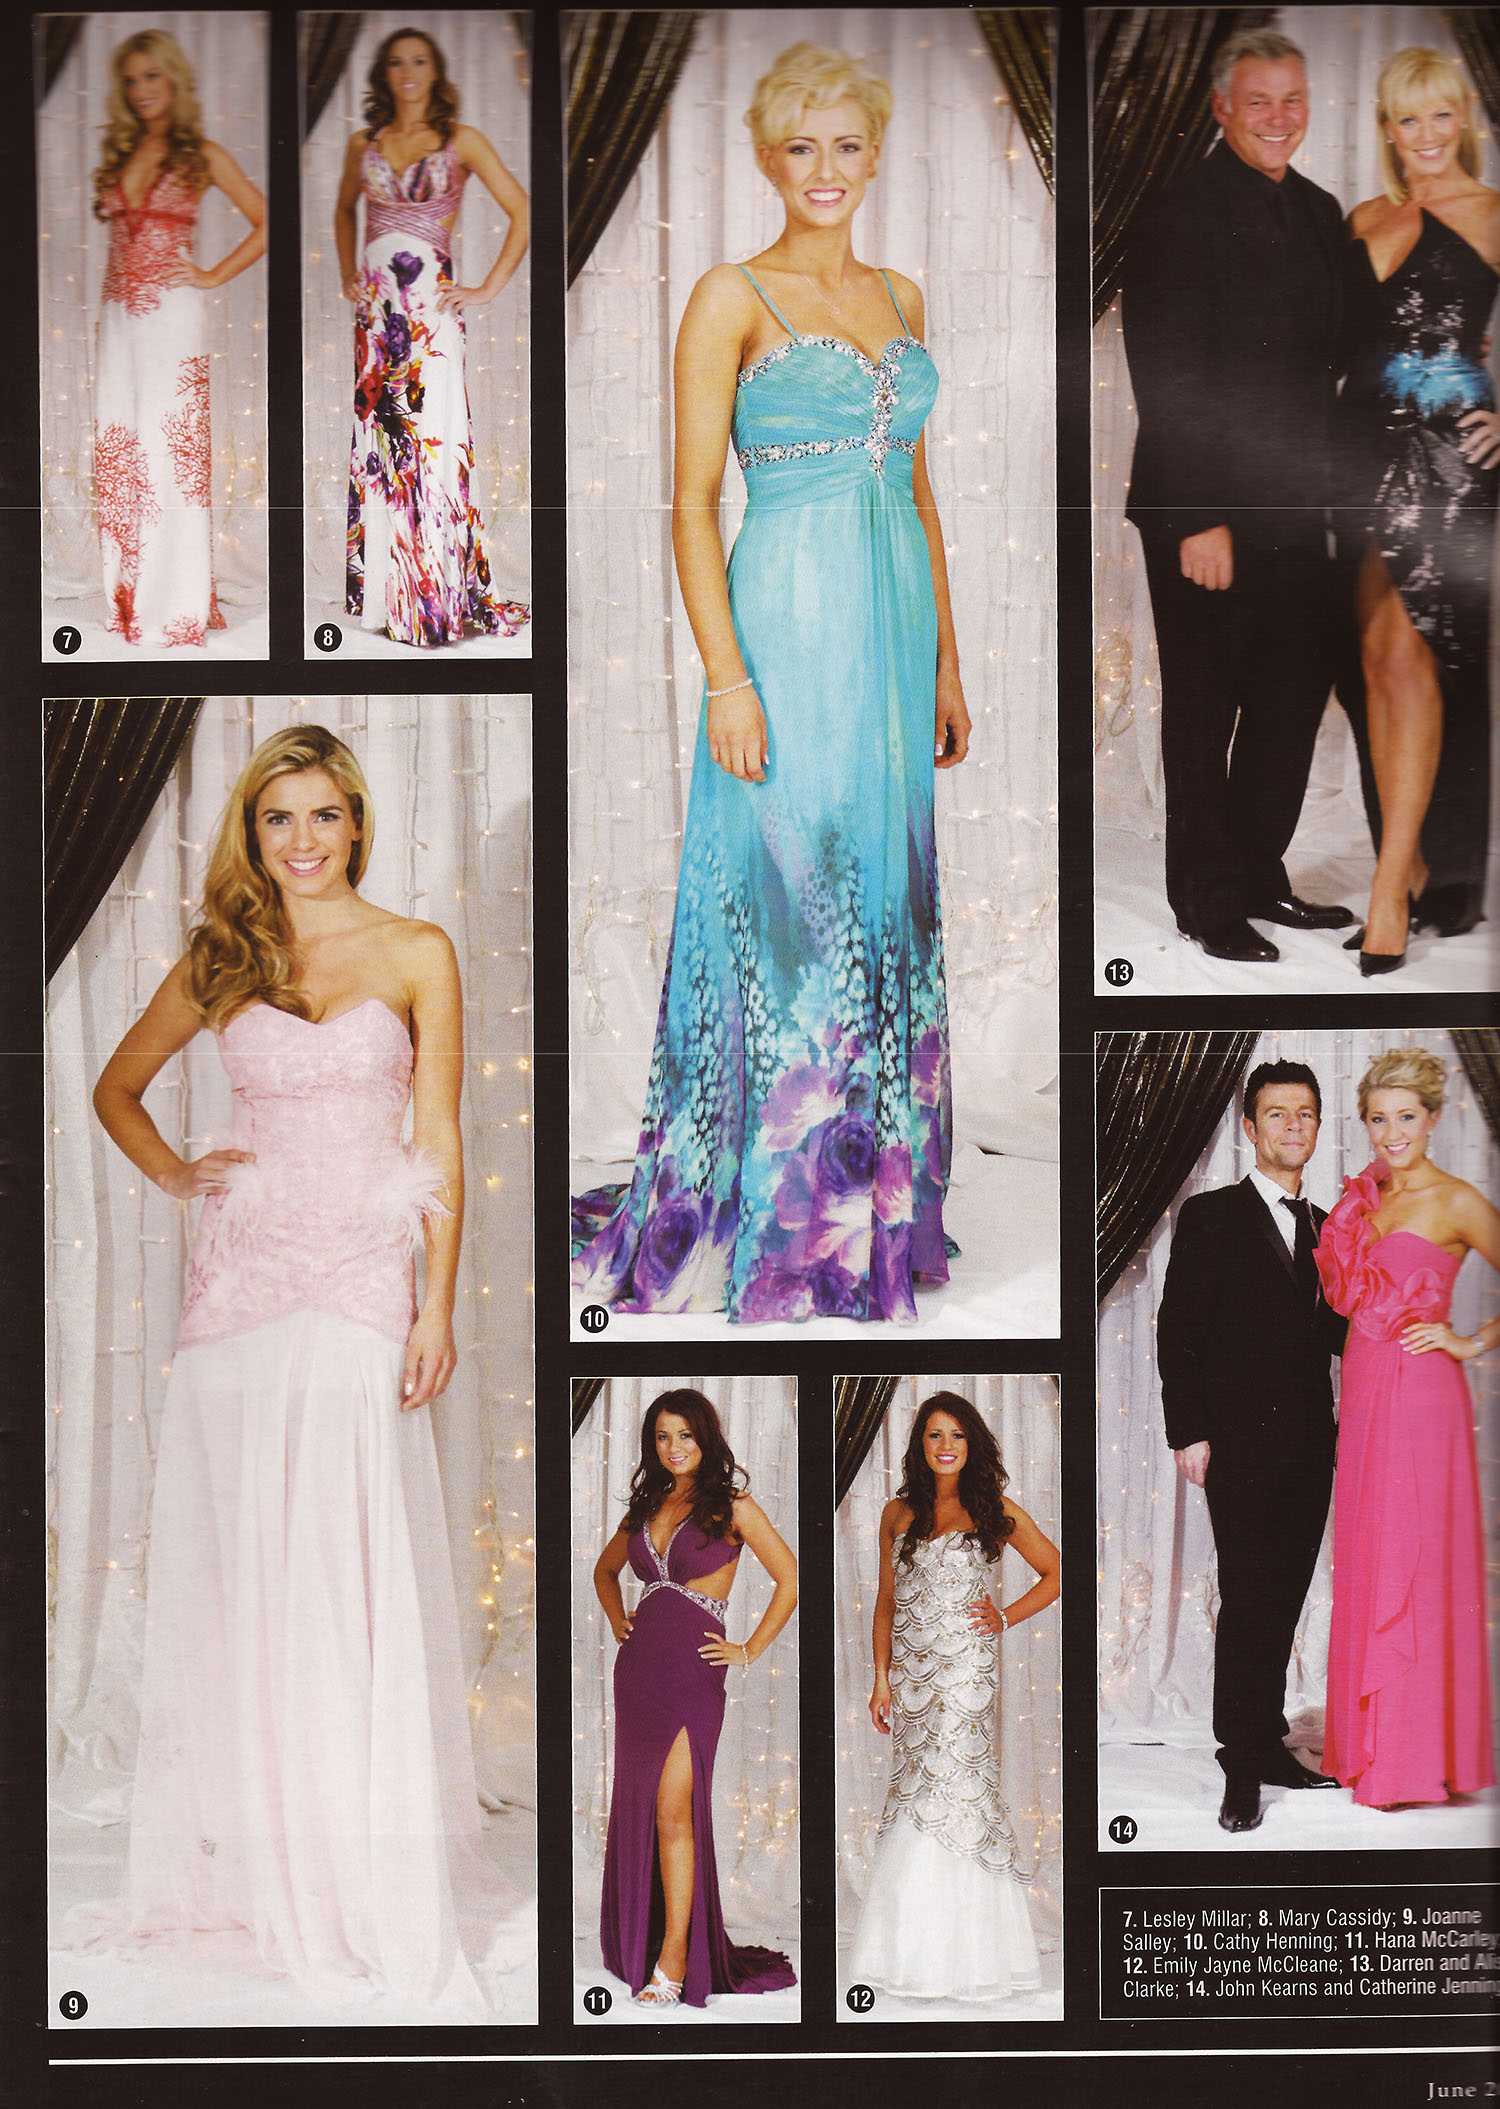 Joanne Salley at Miss NI 2012  wearing RUEDI pic 9 bottom left - IN! Magazine, June 2012